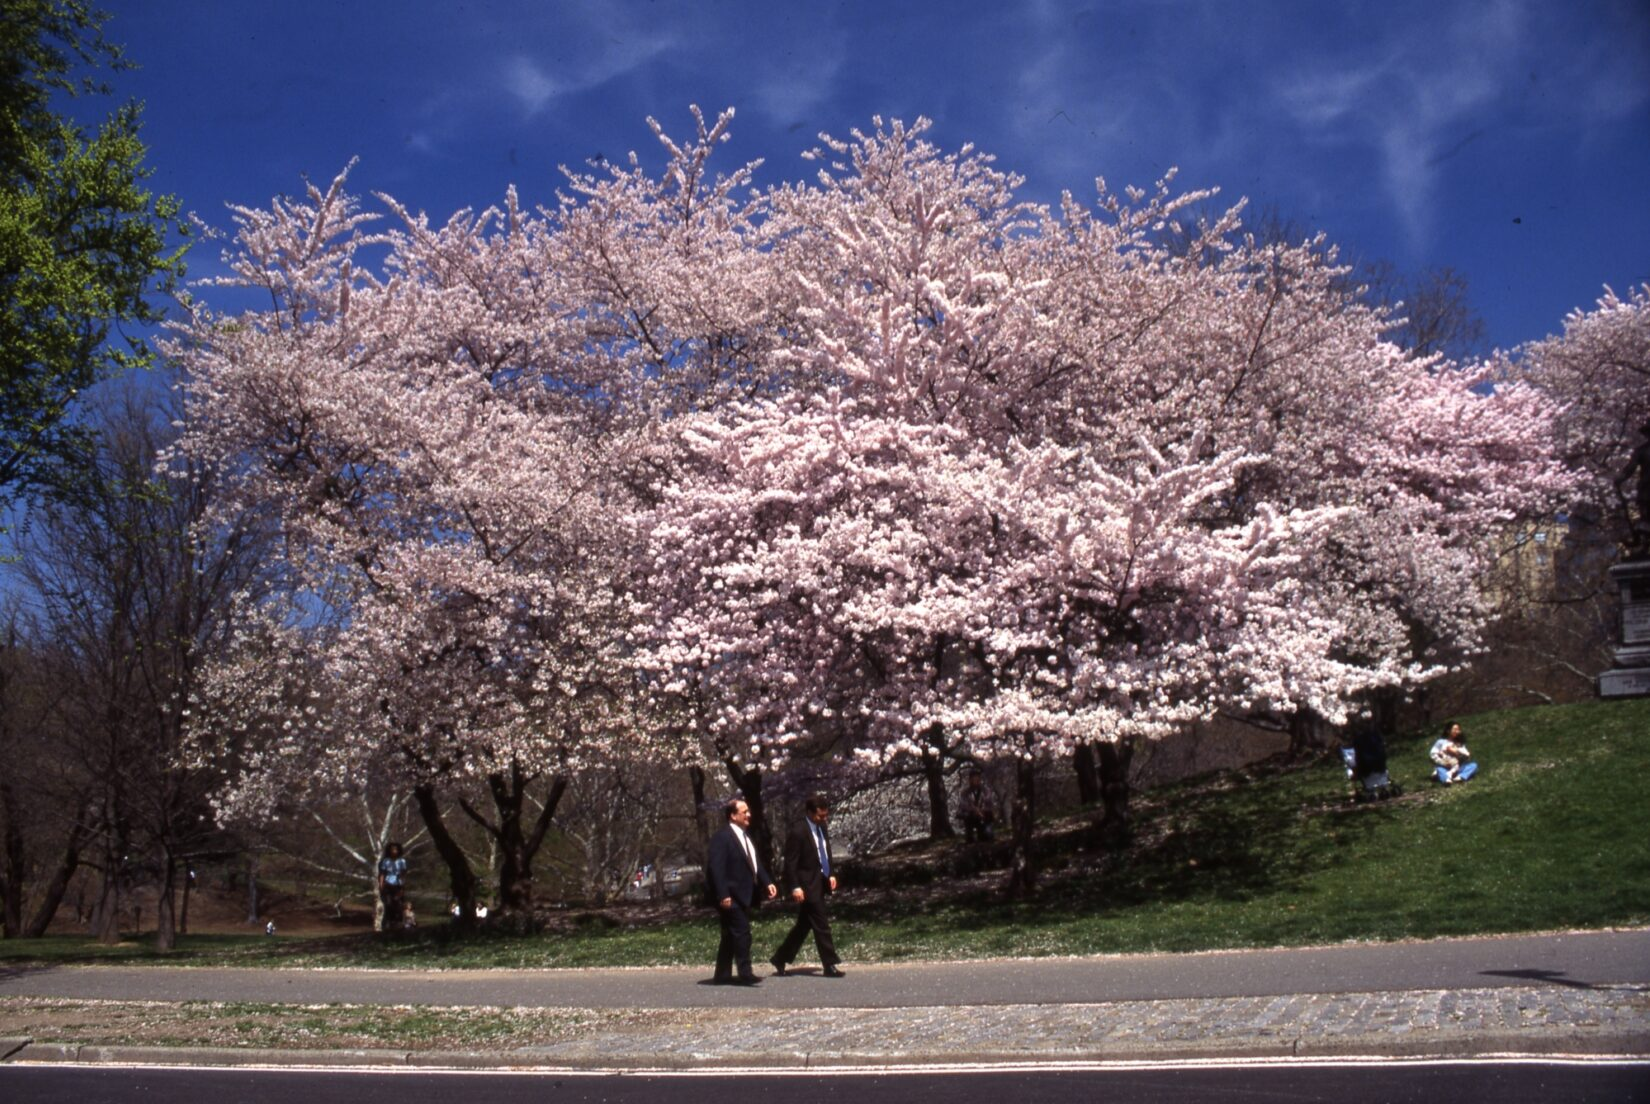 Two men in suits stroll past a tree thick with cherry blossoms